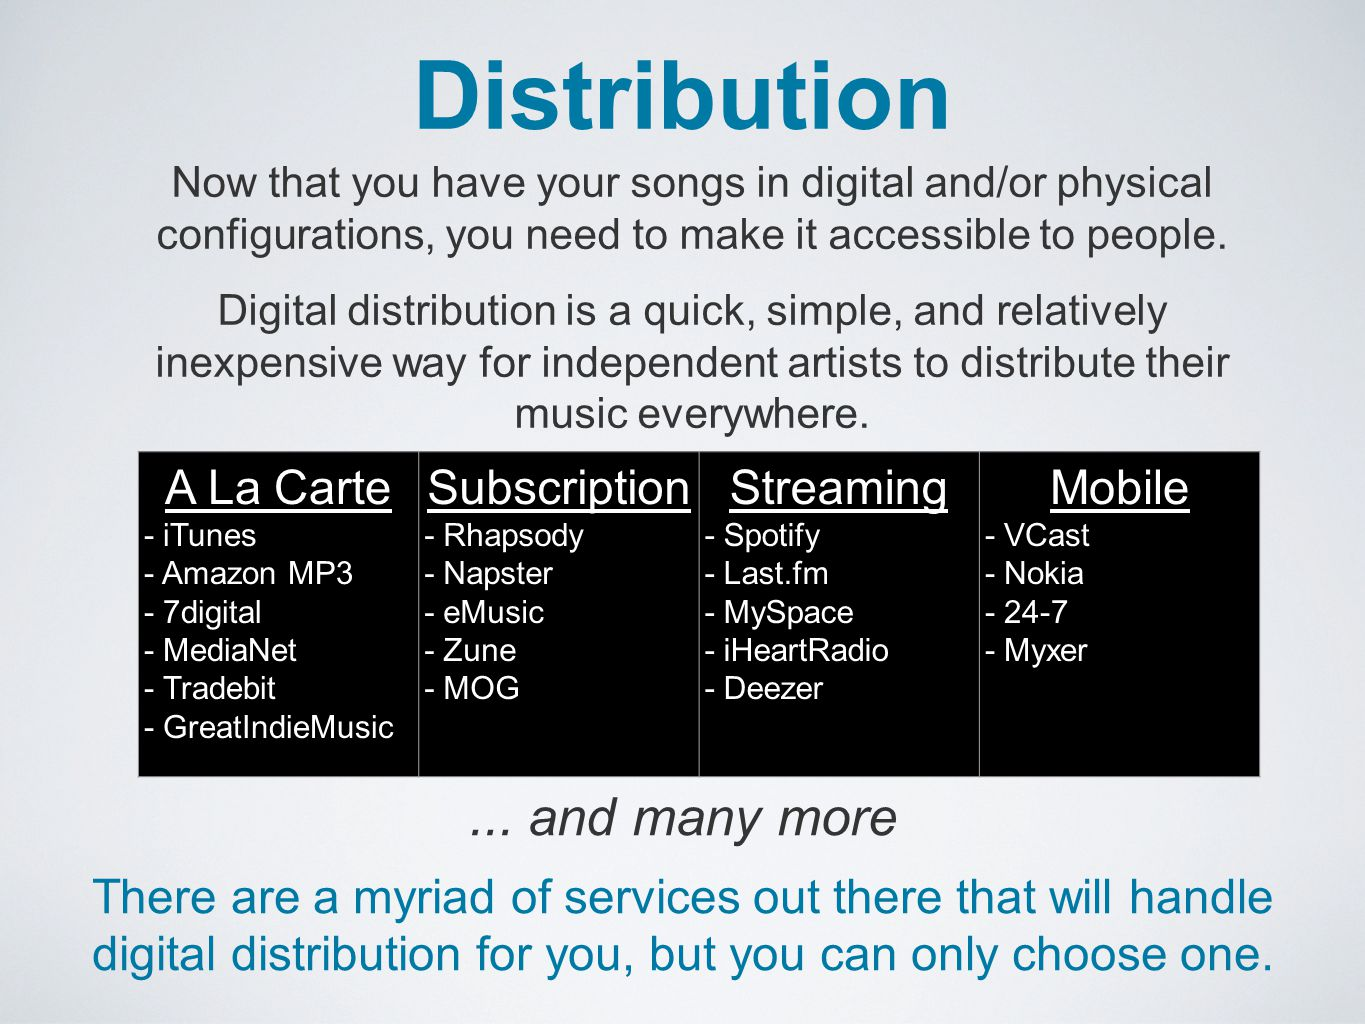 Distribution Now that you have your songs in digital and/or physical configurations, you need to make it accessible to people.